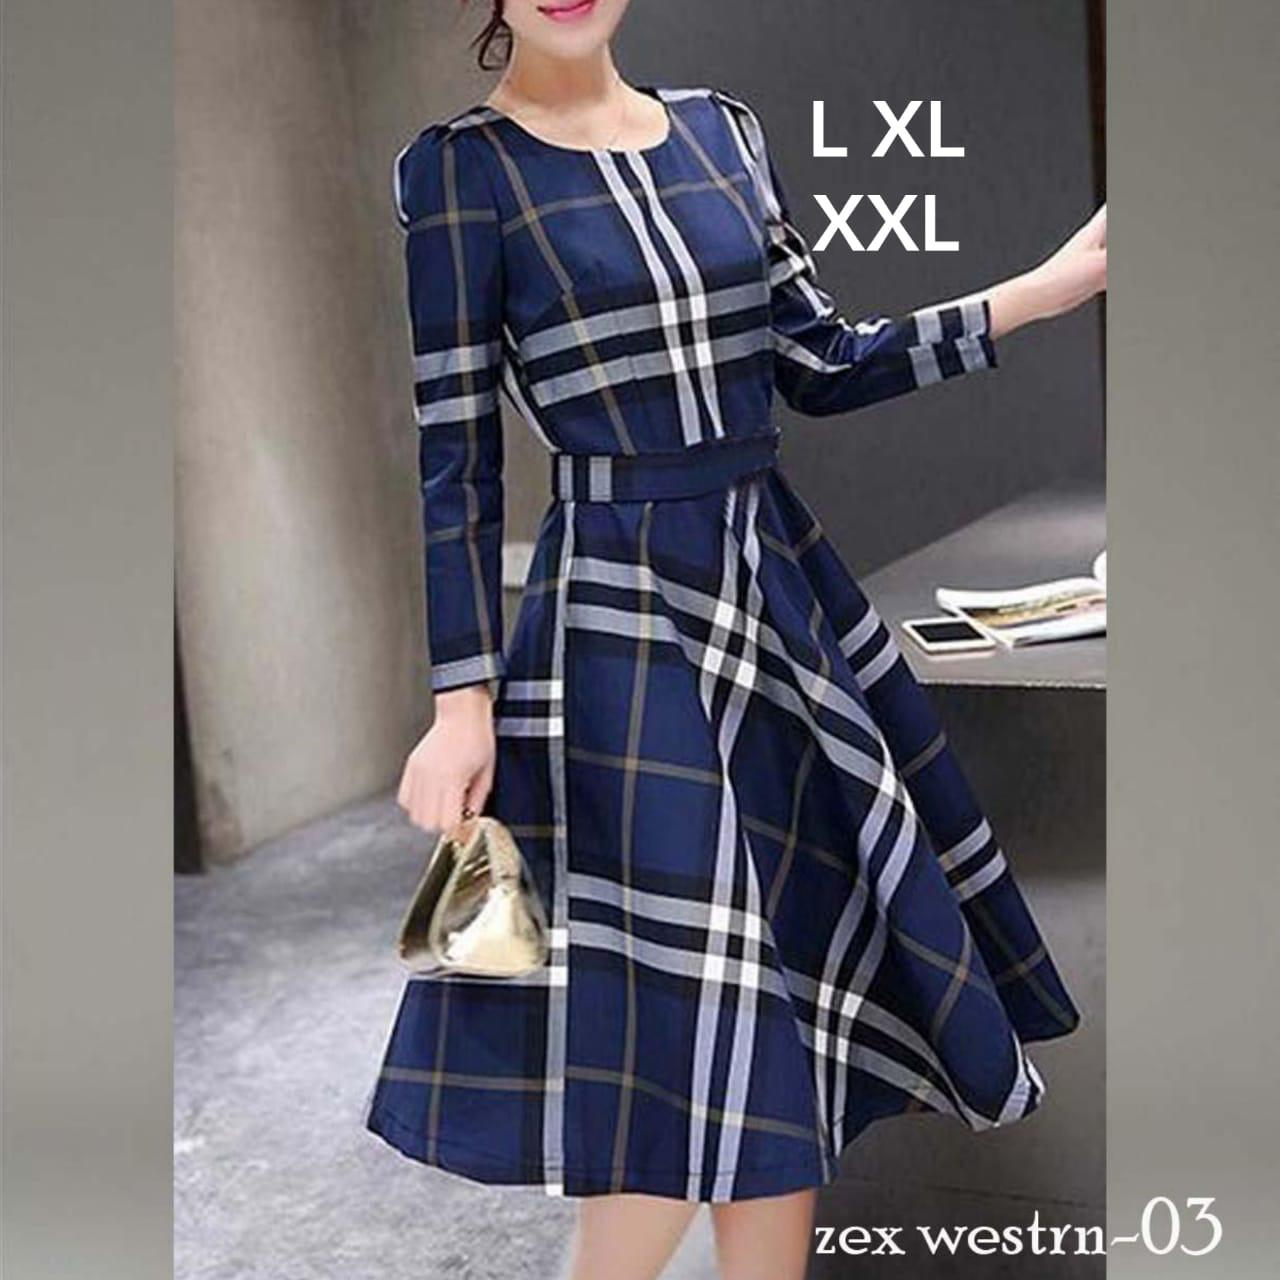 New Western Wear Vol 3 collection 3